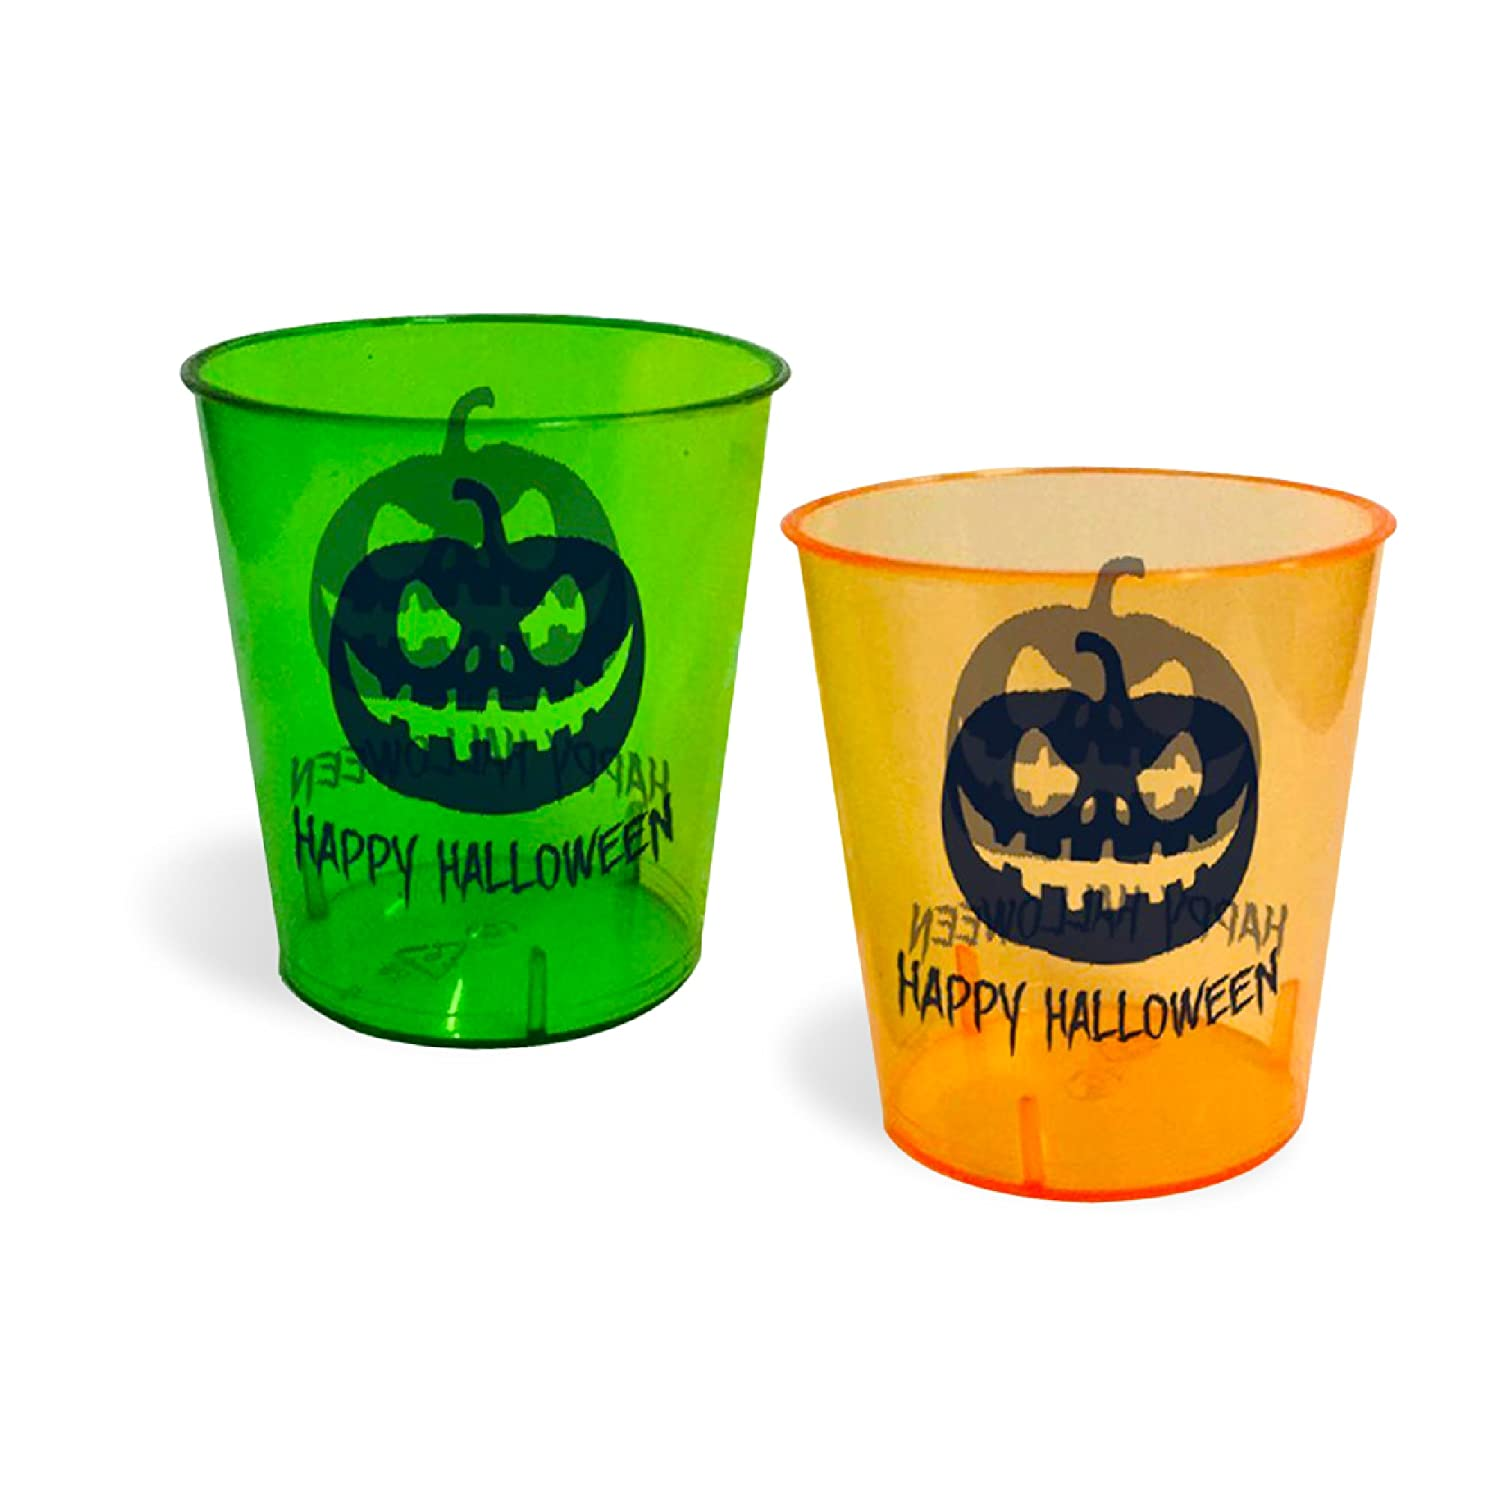 Halloween Shot Glasses - Durable Plastic - 1 Oz. - With Happy Halloween Design - 24 Pack - 12 Pieces Green, 12 Pieces Orange - Perfect For Parties - Get Dressed Up & Drunk Kaba Flair